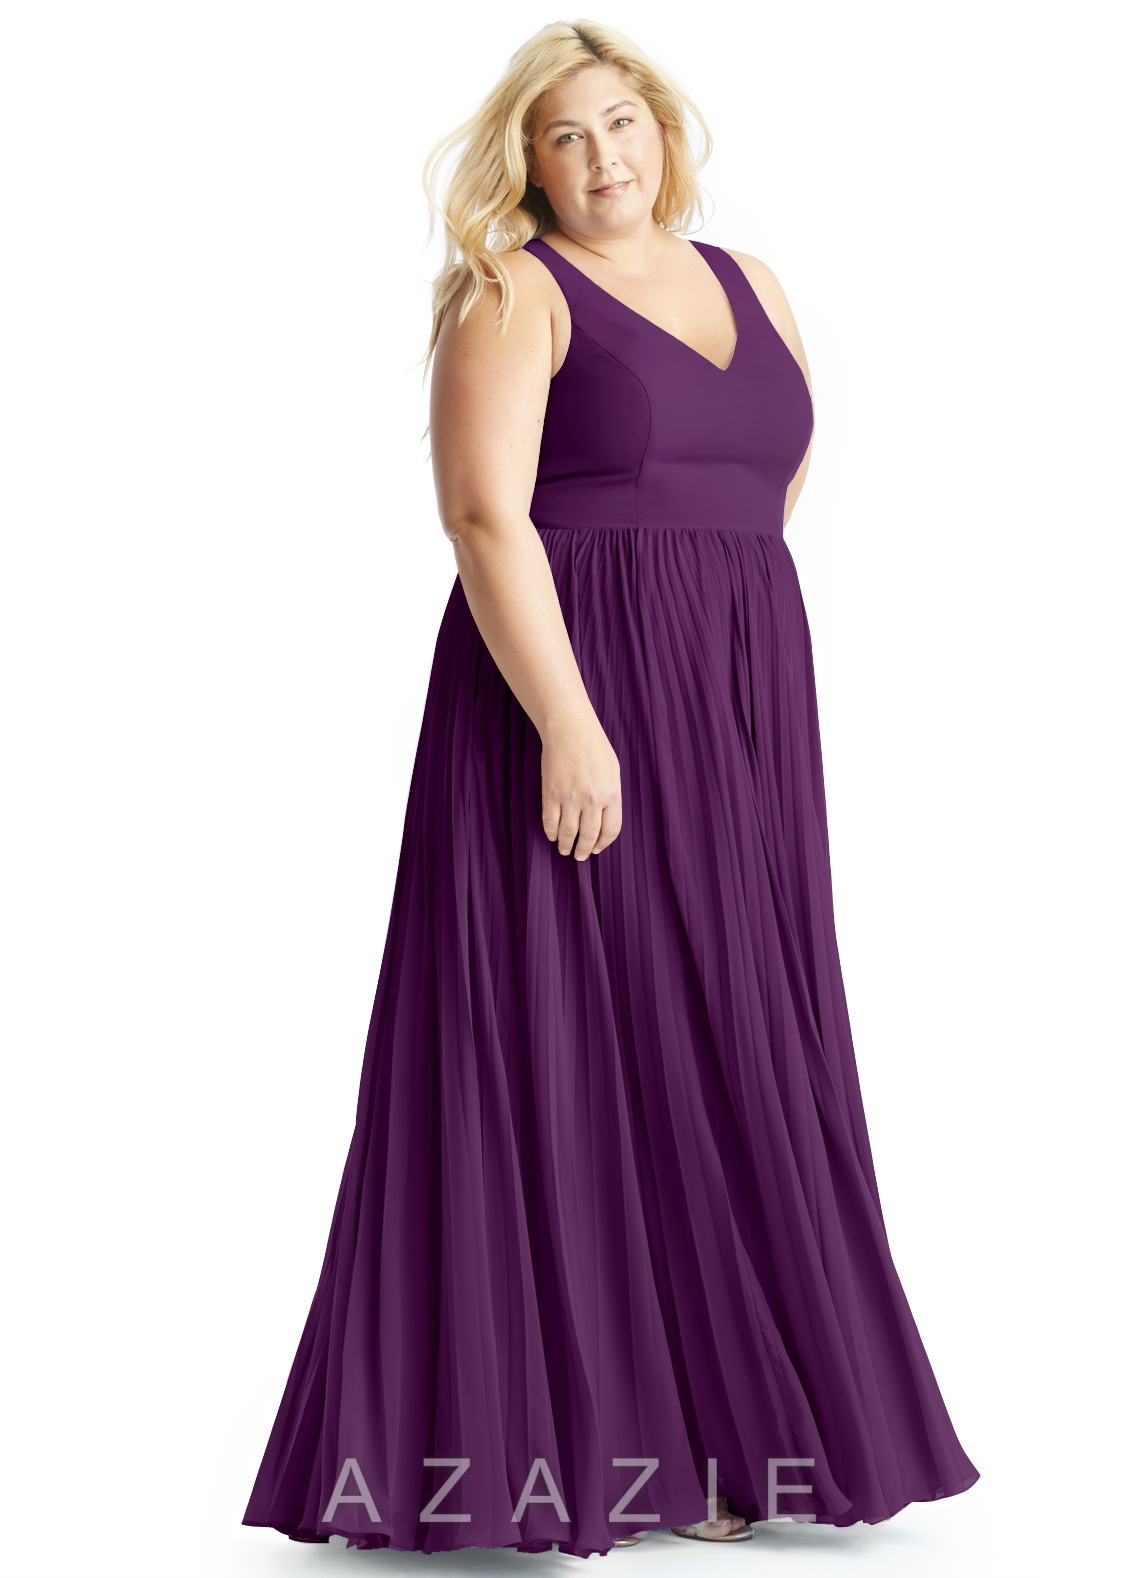 Plus Size Prom Dresses | Plus Size Wedding Dresses | Plus Size ...